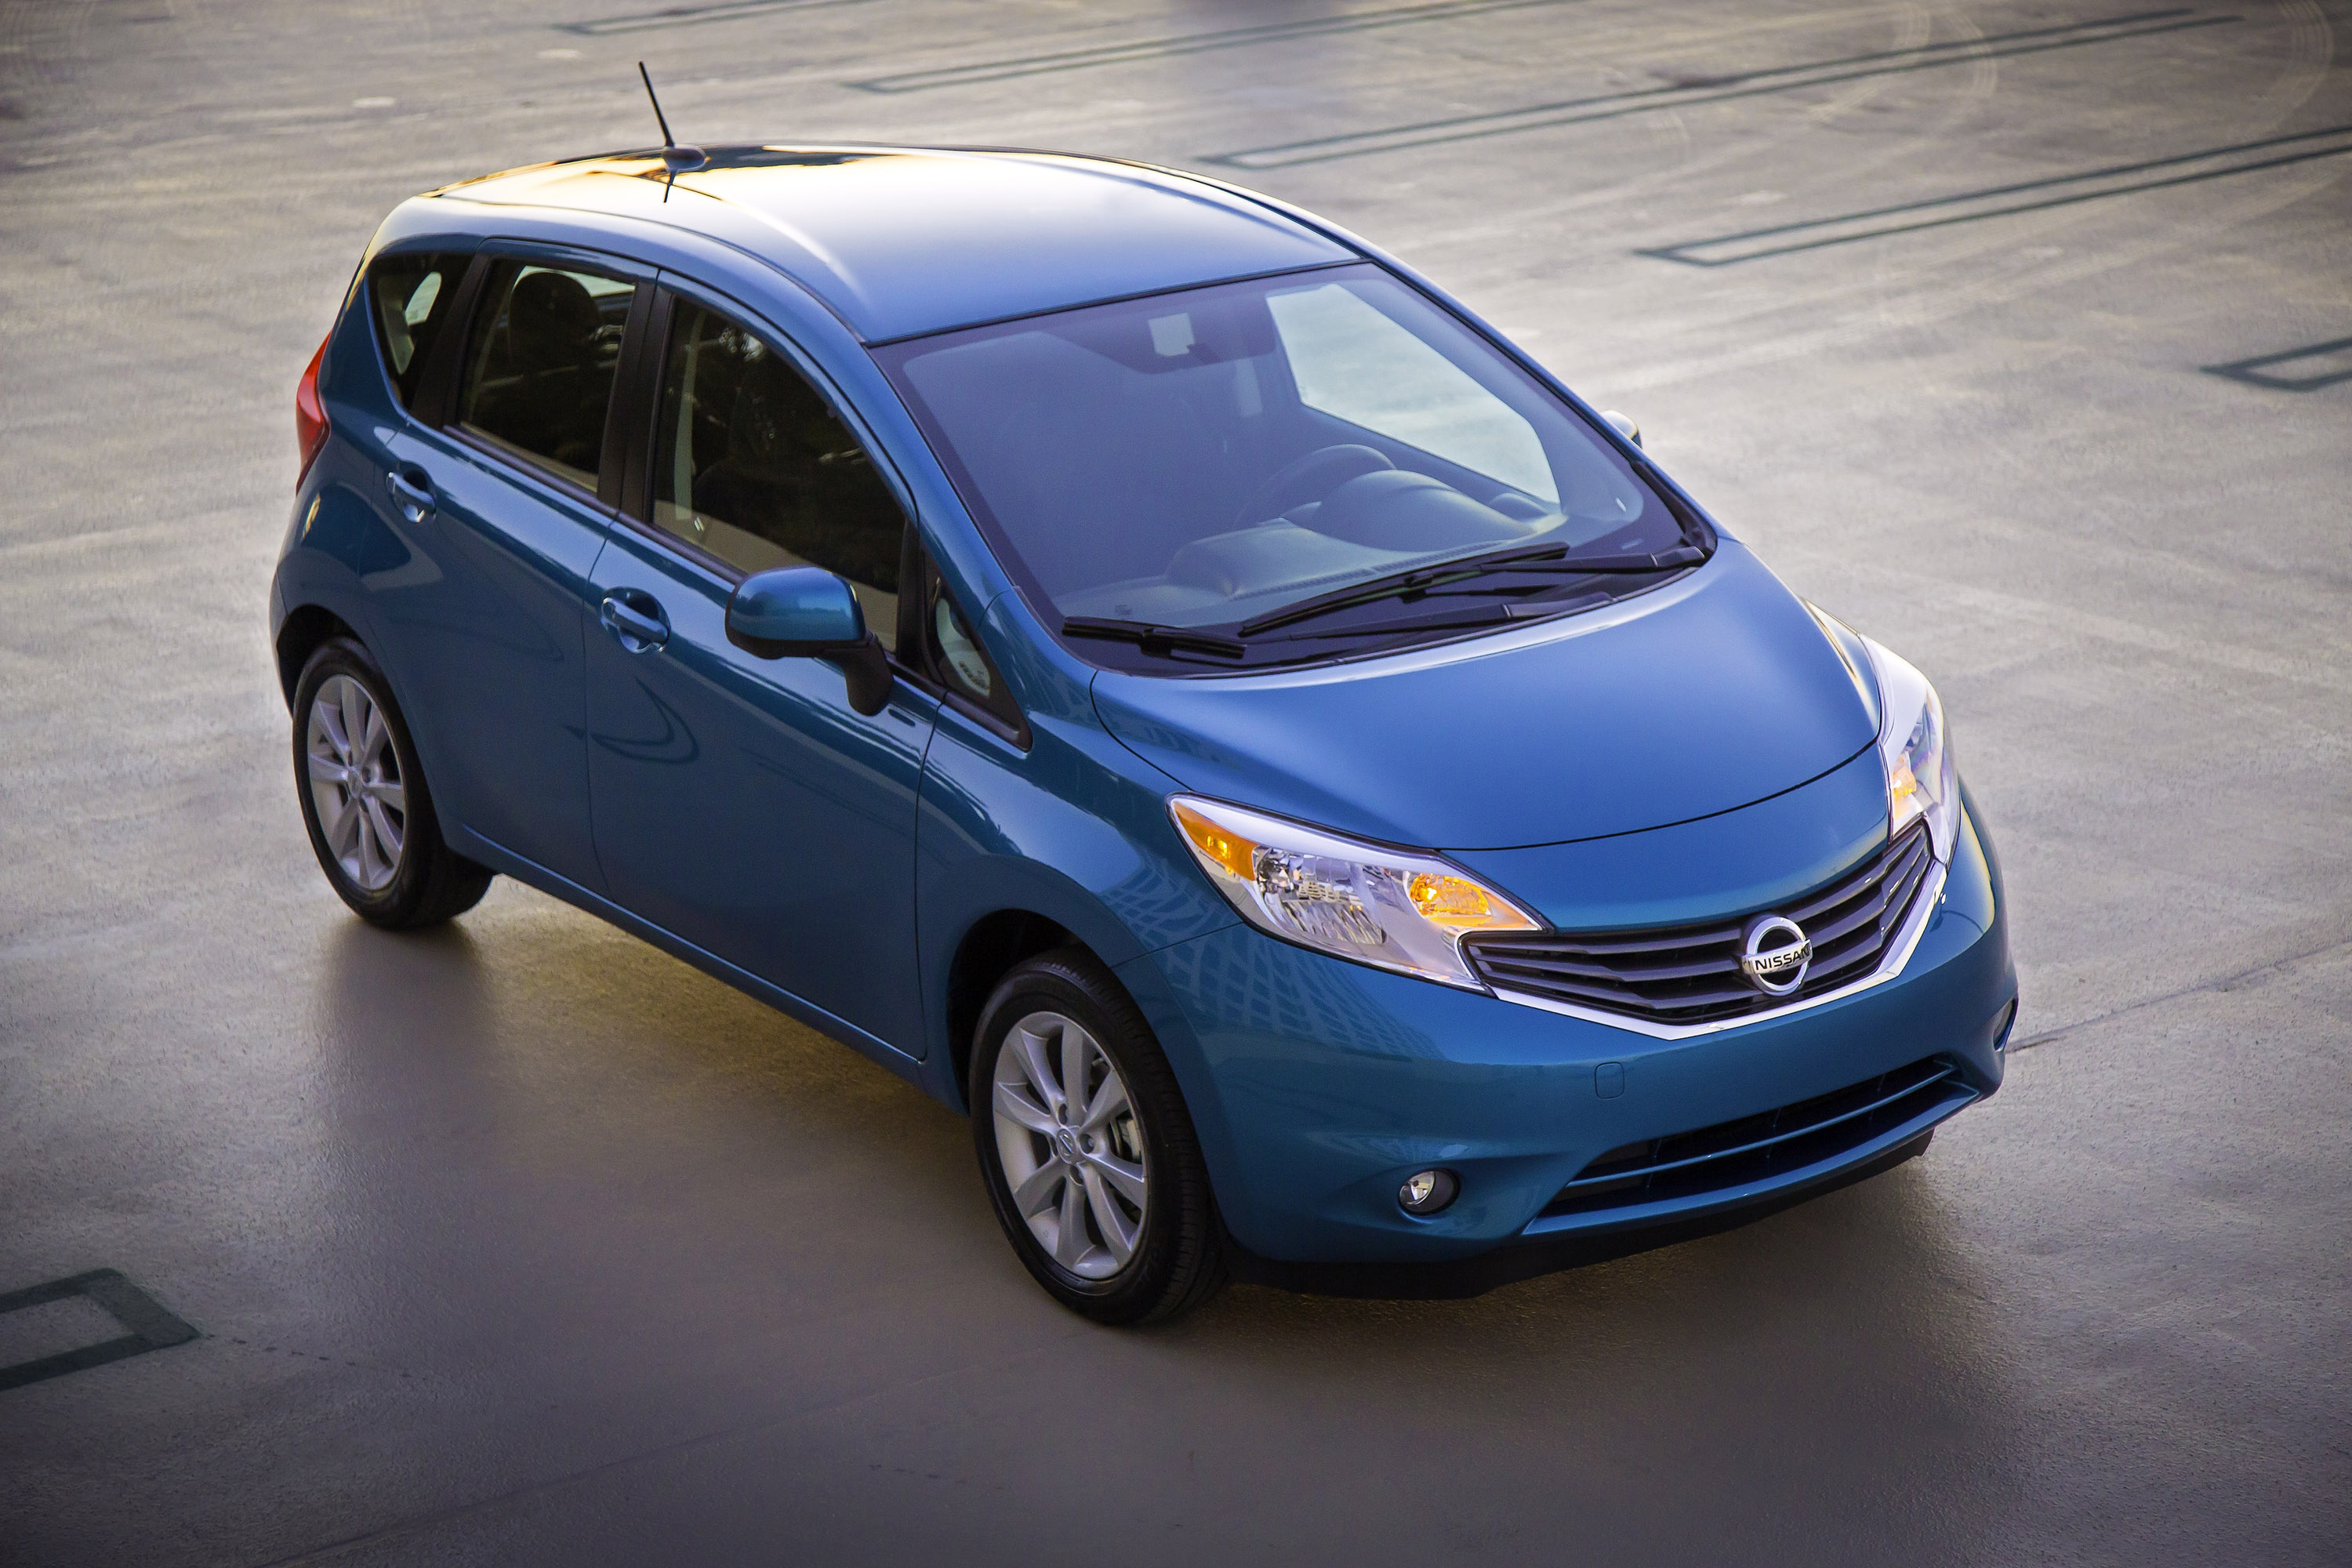 2014 nissan versa note us price 13 990. Black Bedroom Furniture Sets. Home Design Ideas